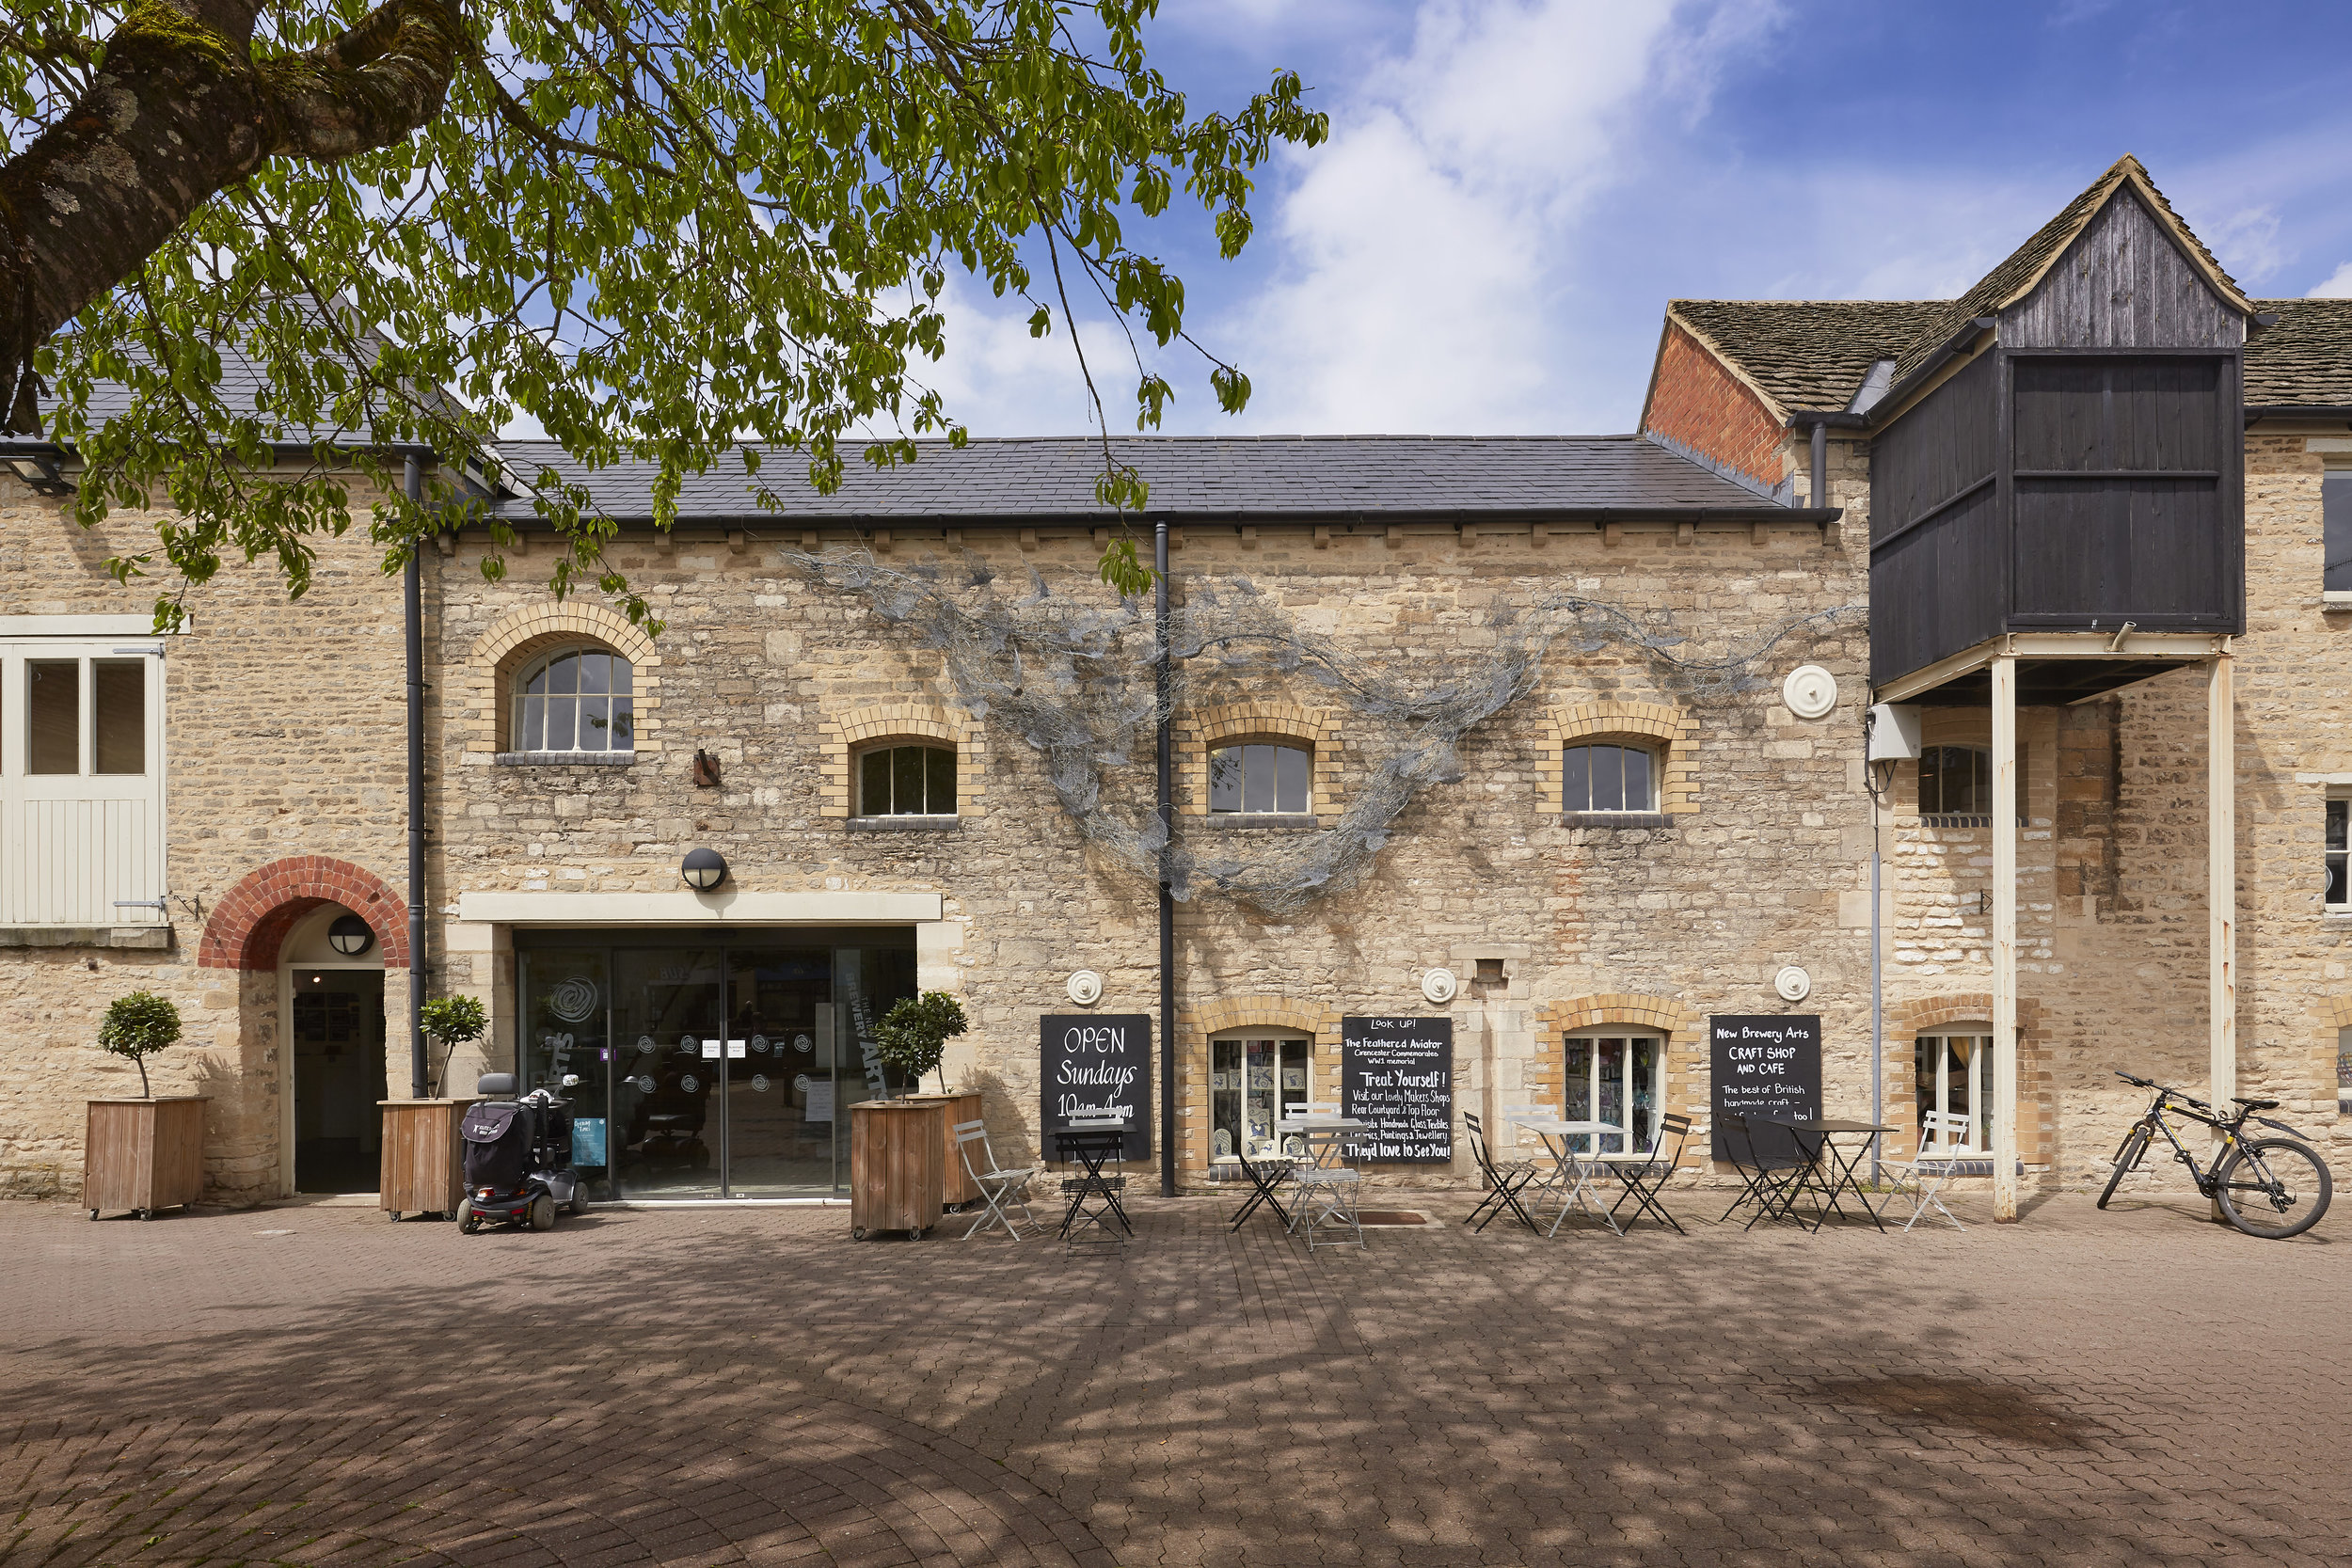 New Brewery Arts in Brewery Court, Cirencester